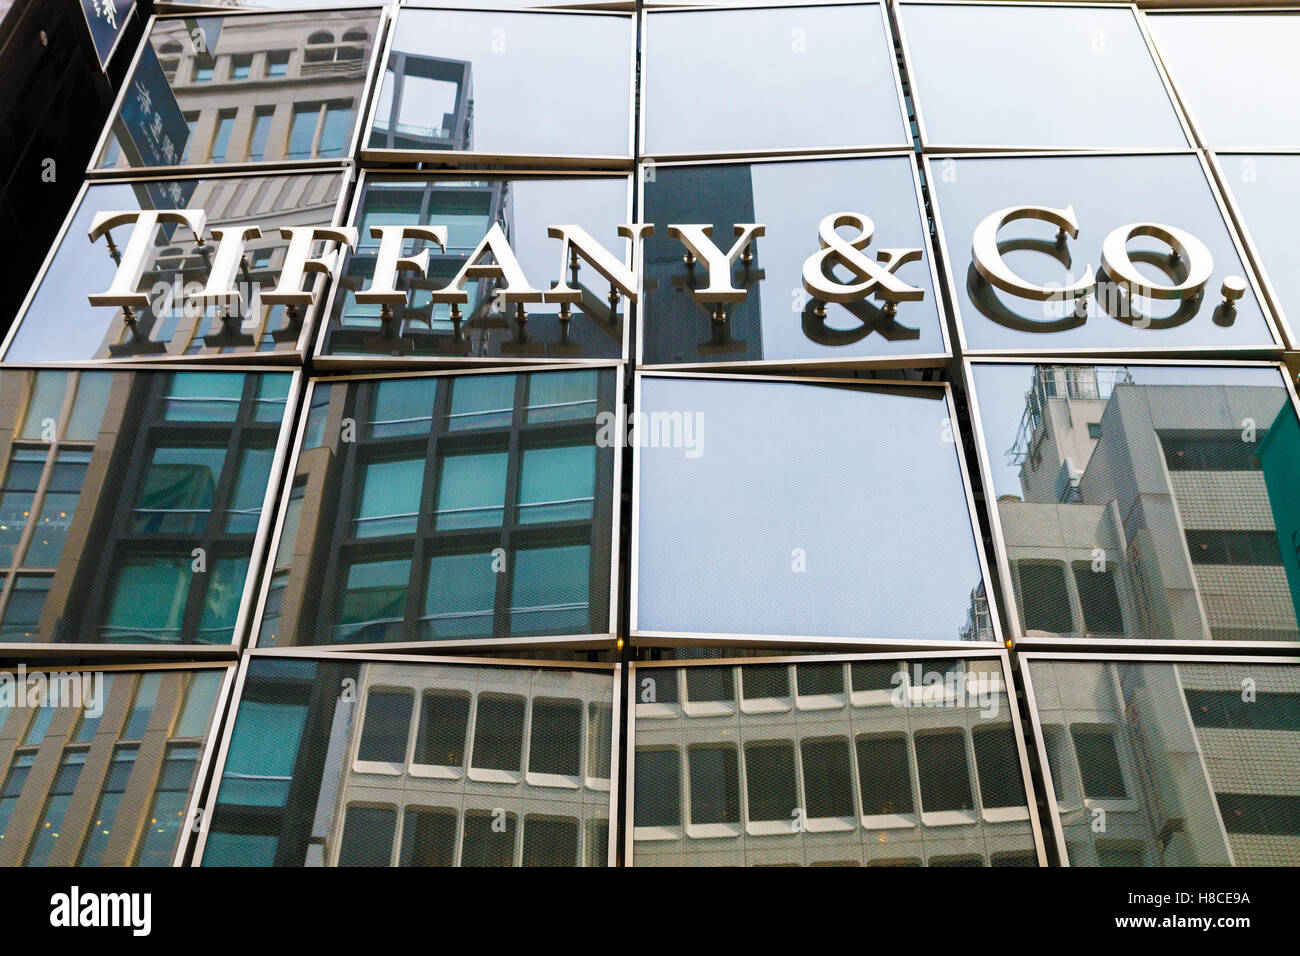 bf47a5693 Japan, Tokyo, Ginza, Chuo-Dori. Looking up at Tiffany & Co building name on  darkened glass reflective windows. Daytime. Malcolm Fairman / Alamy Stock  Photo